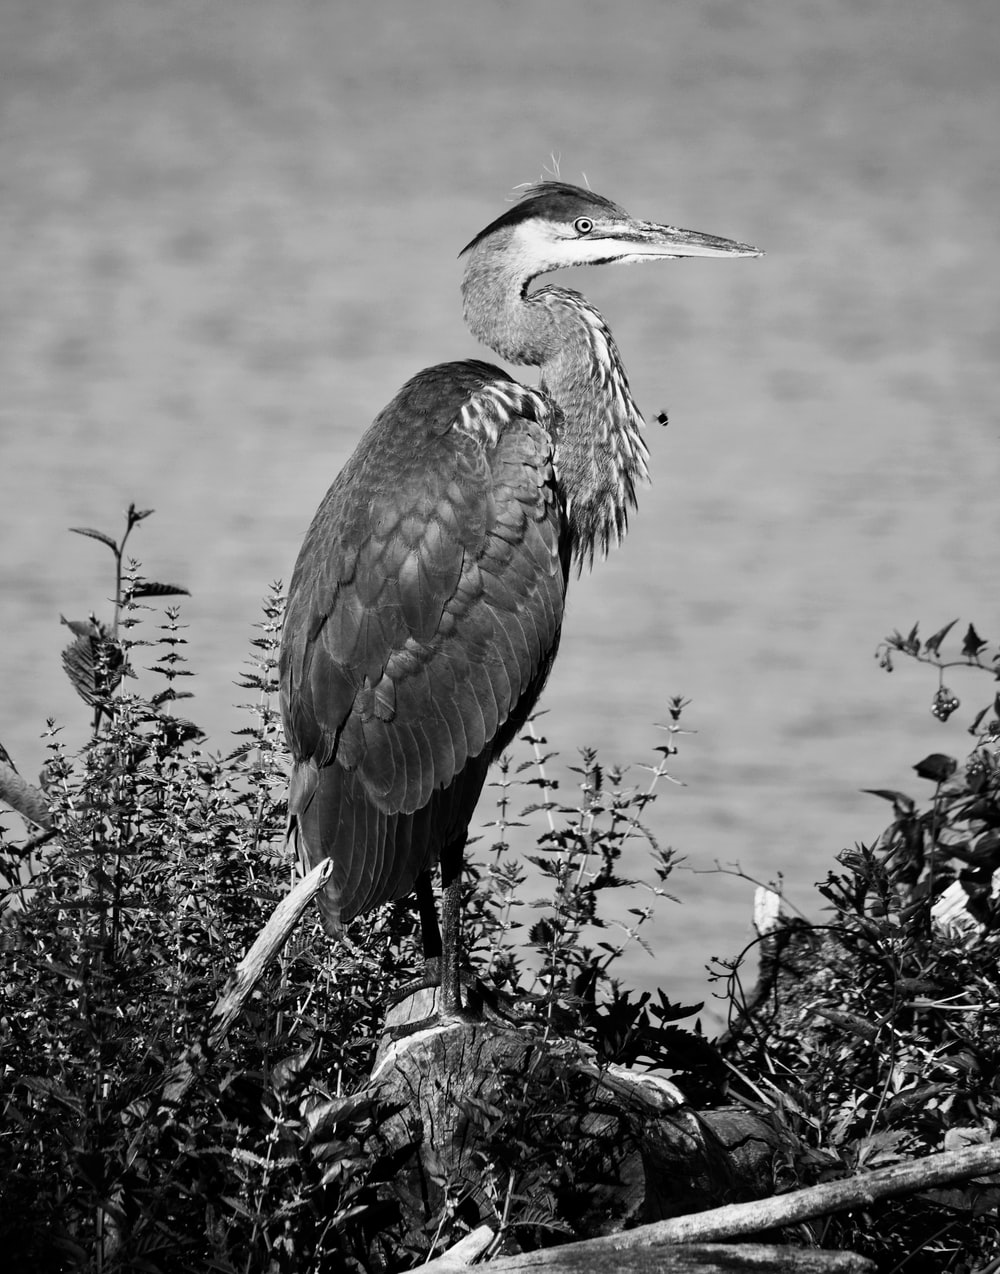 grayscale photo of long-beaked bird perched on rock